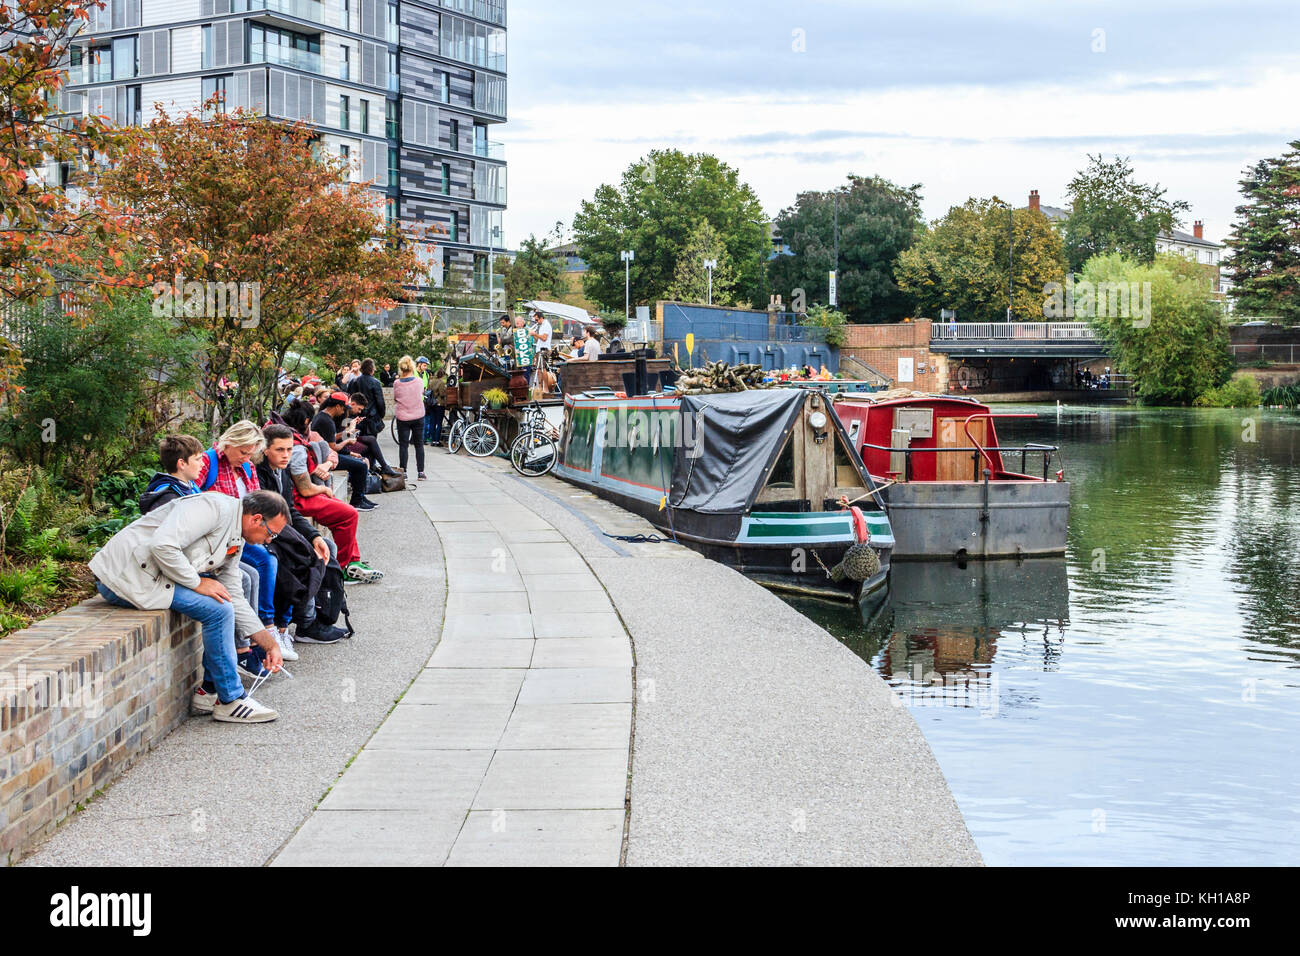 People sitting and congregation on the towpath on Regent's Canal at King's Cross, London, UK, 2017 - Stock Image